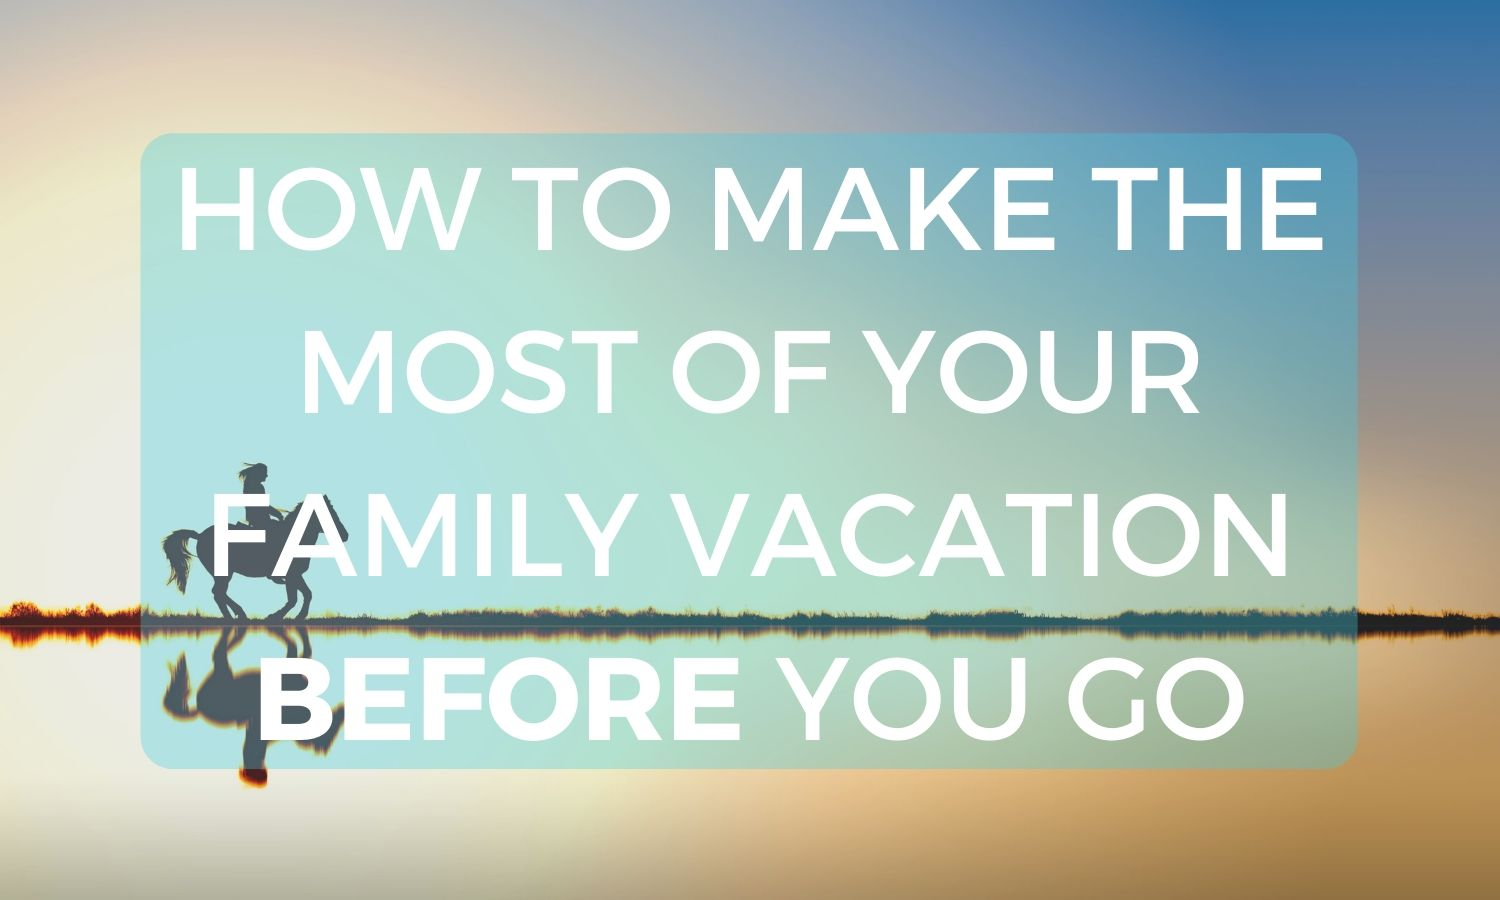 How to Make the Most of Your Family Vacation BEFORE You Go